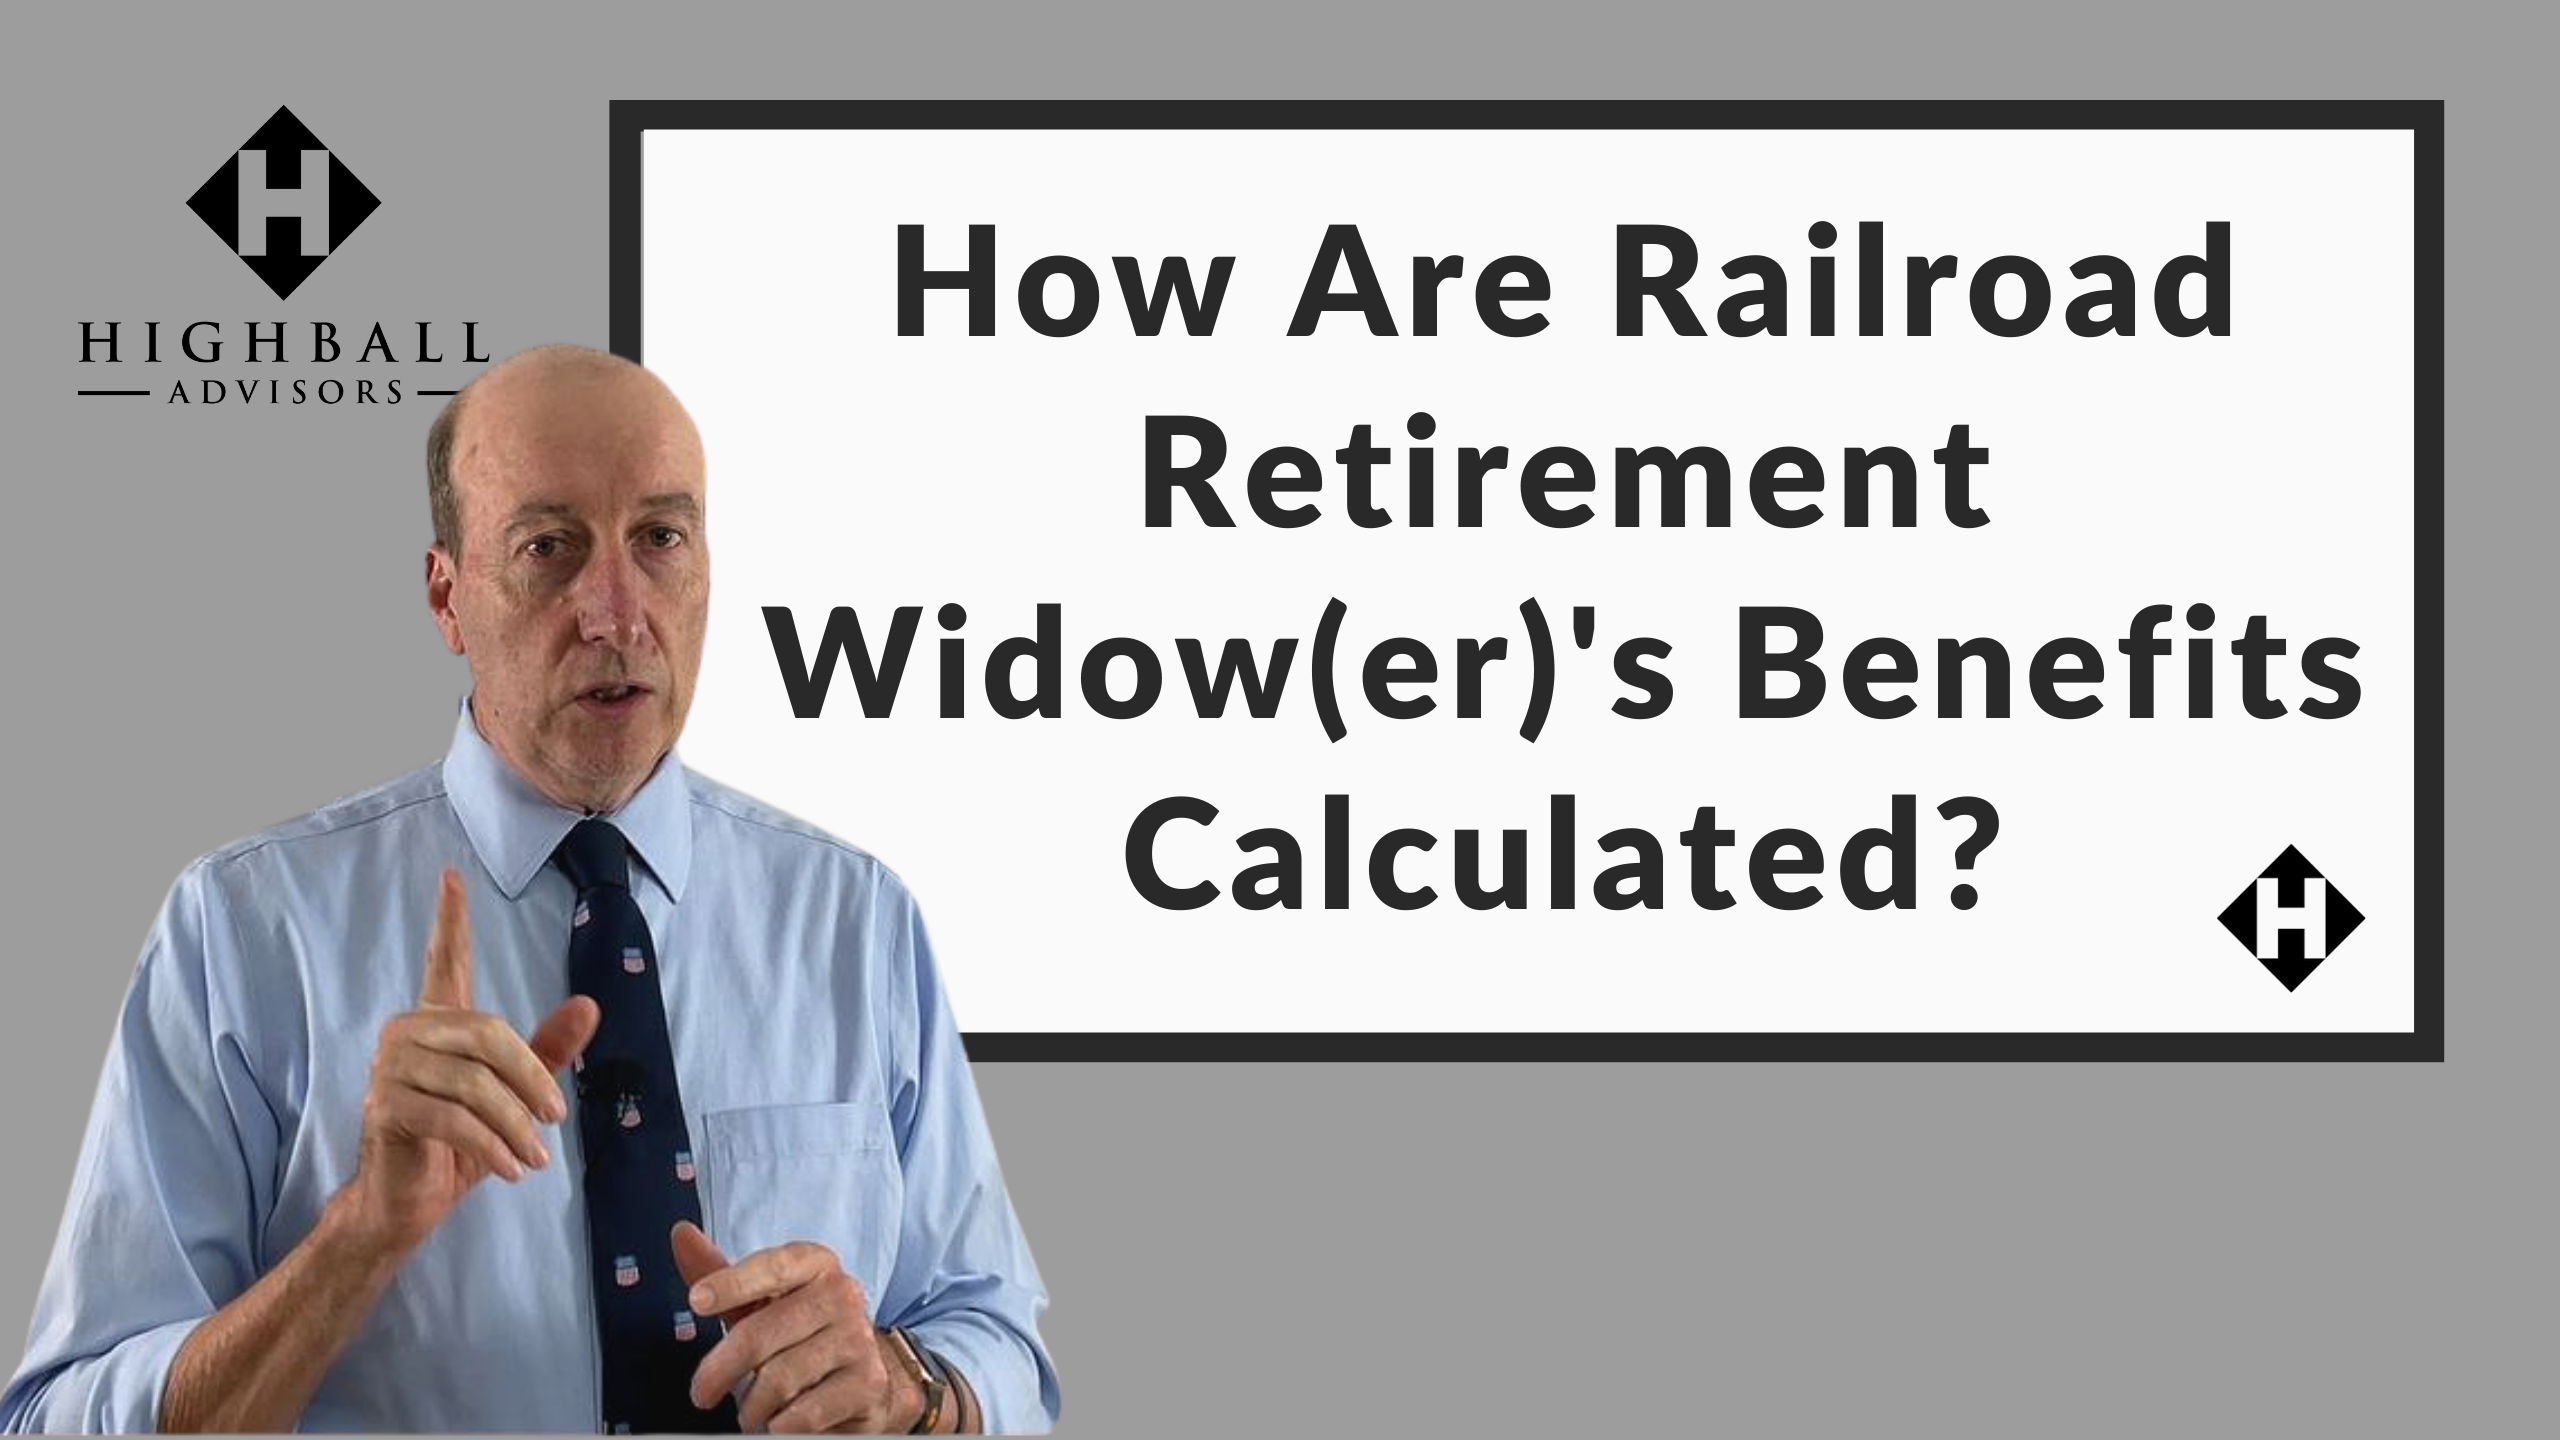 How Are Railroad Retirement Widow(er)'s Benefits Calculated? Thumbnail